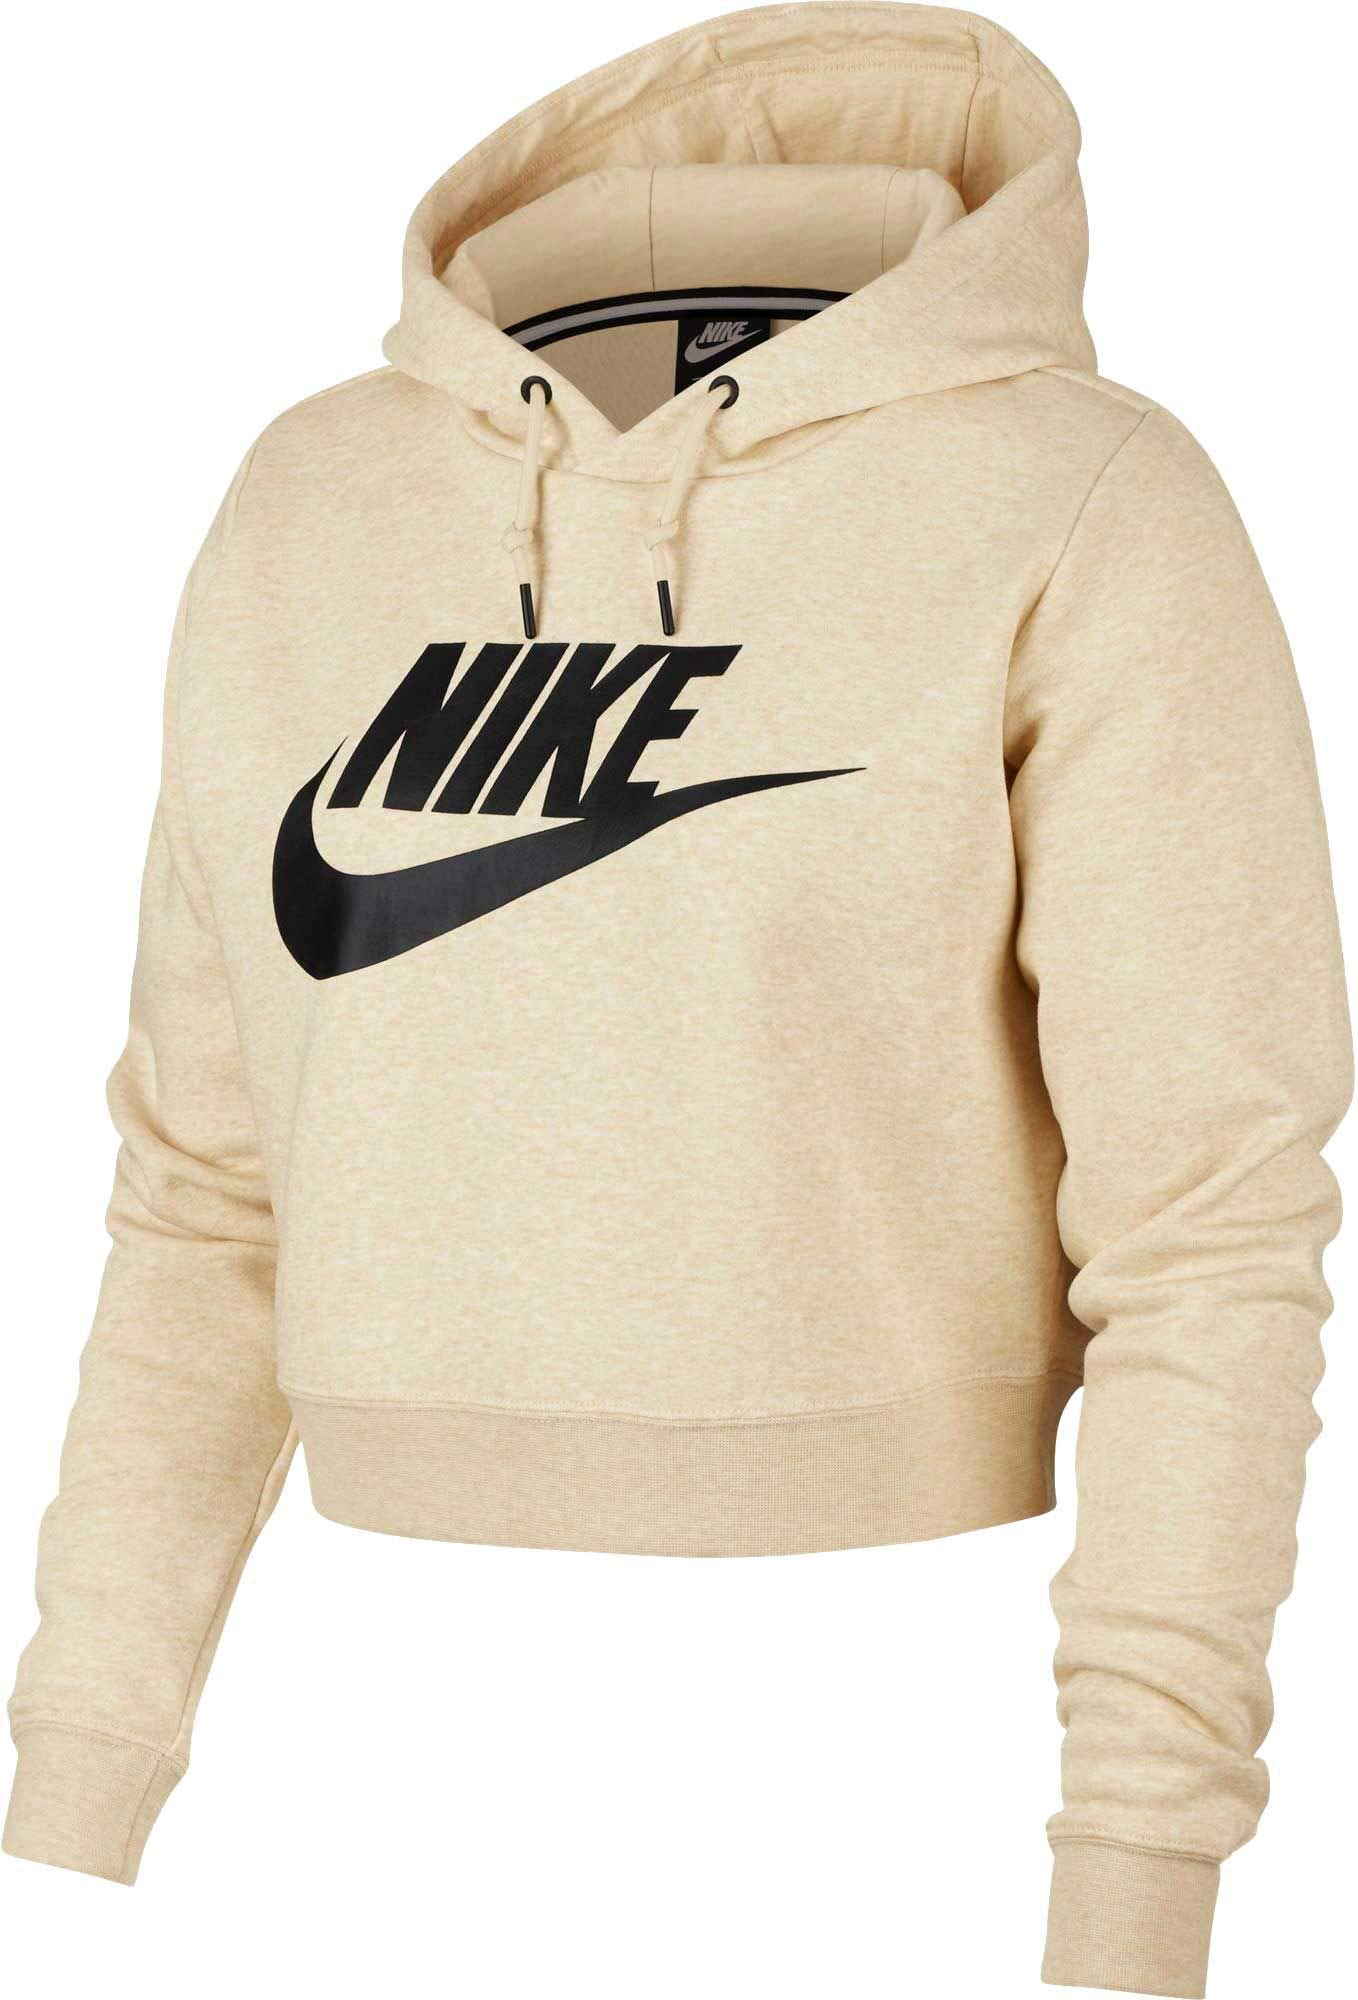 Nike Women's Sportswear Rally Cropped Hoodie (L, Light Cream)